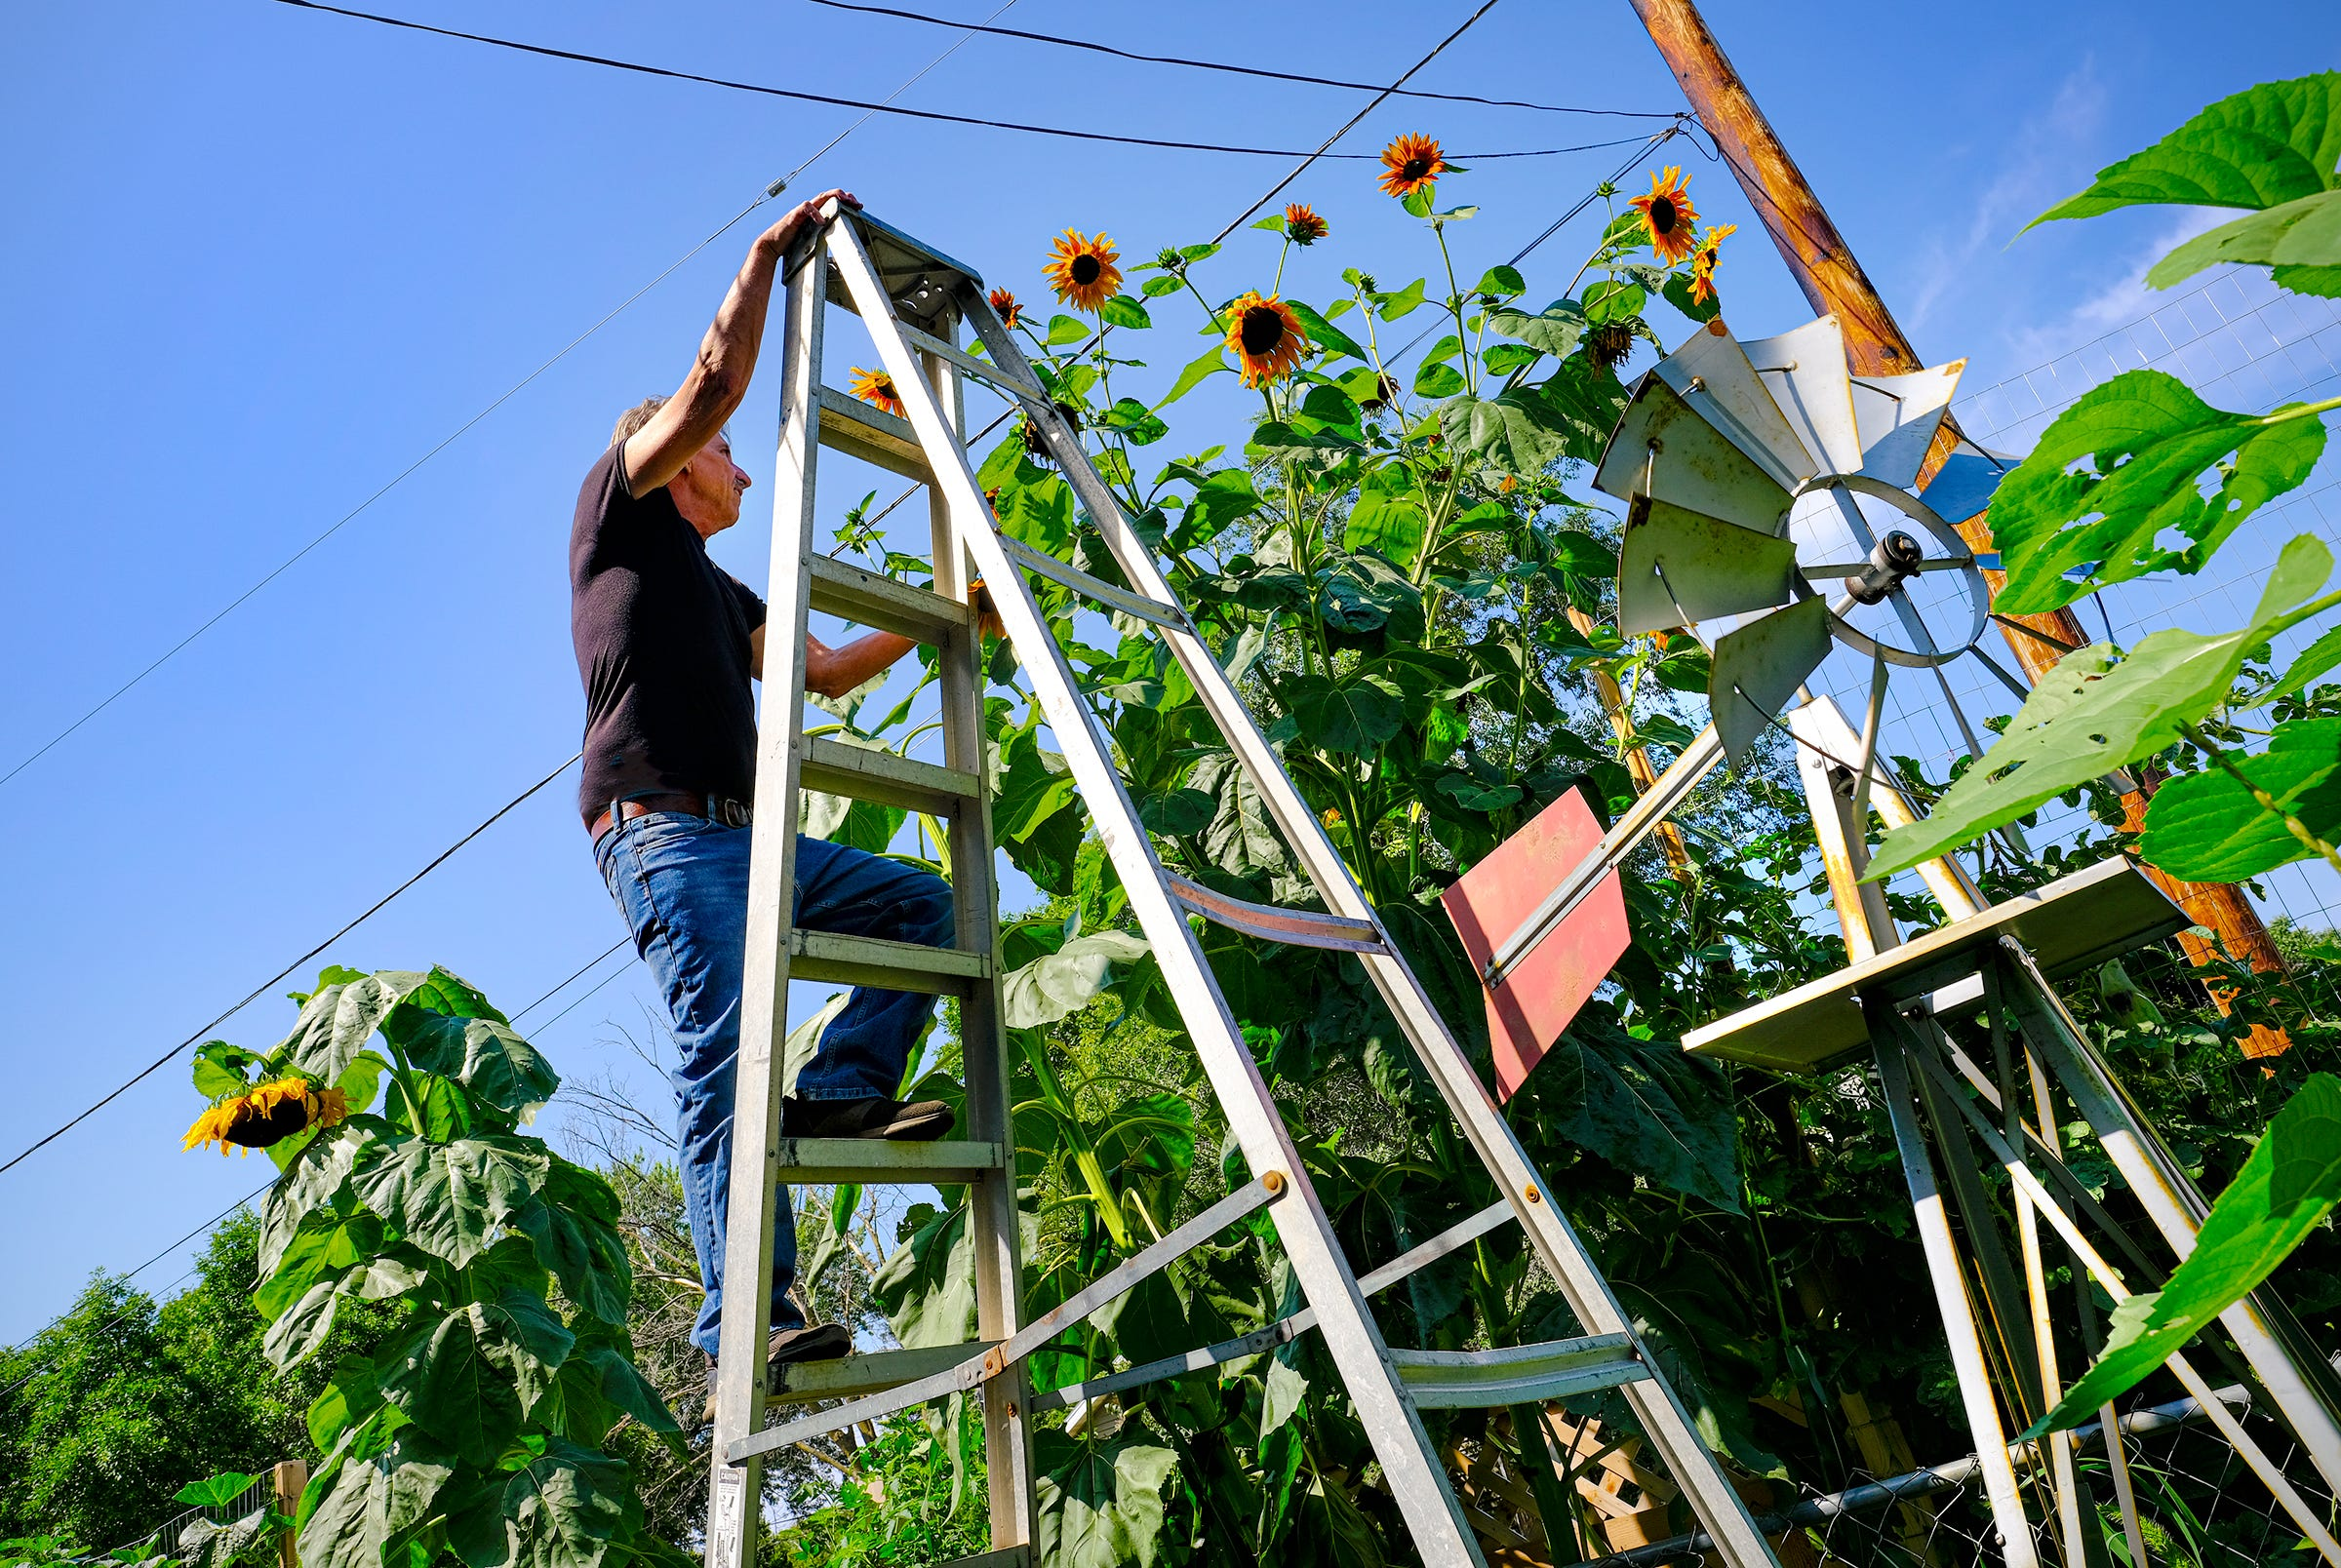 St Cloud Garden Booming With Experimental With Irrigation System